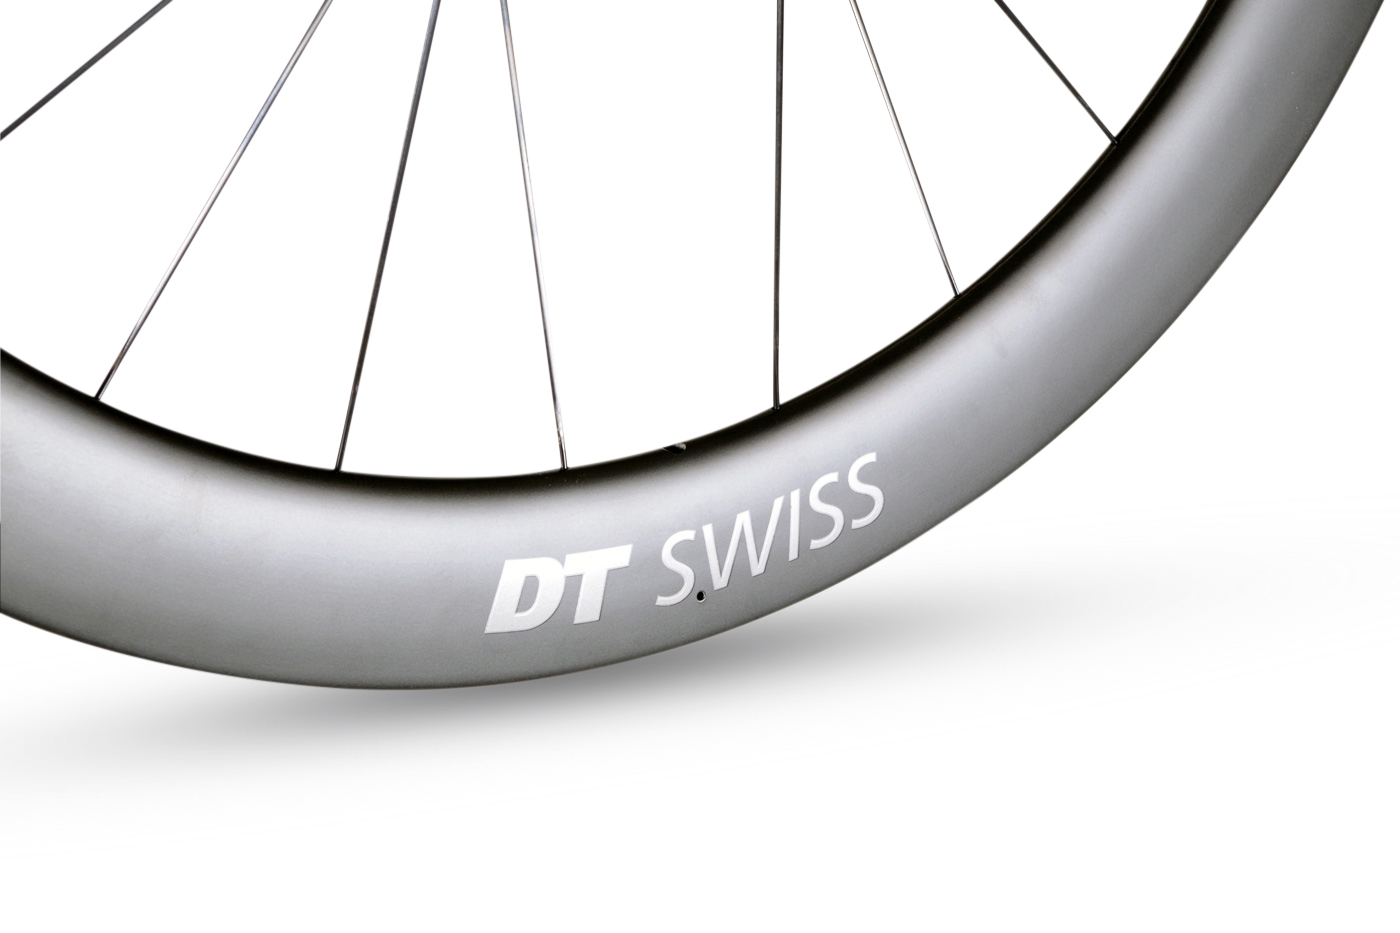 DT Swiss 04 - DT Swiss wheels - Now available at 8bar bikes